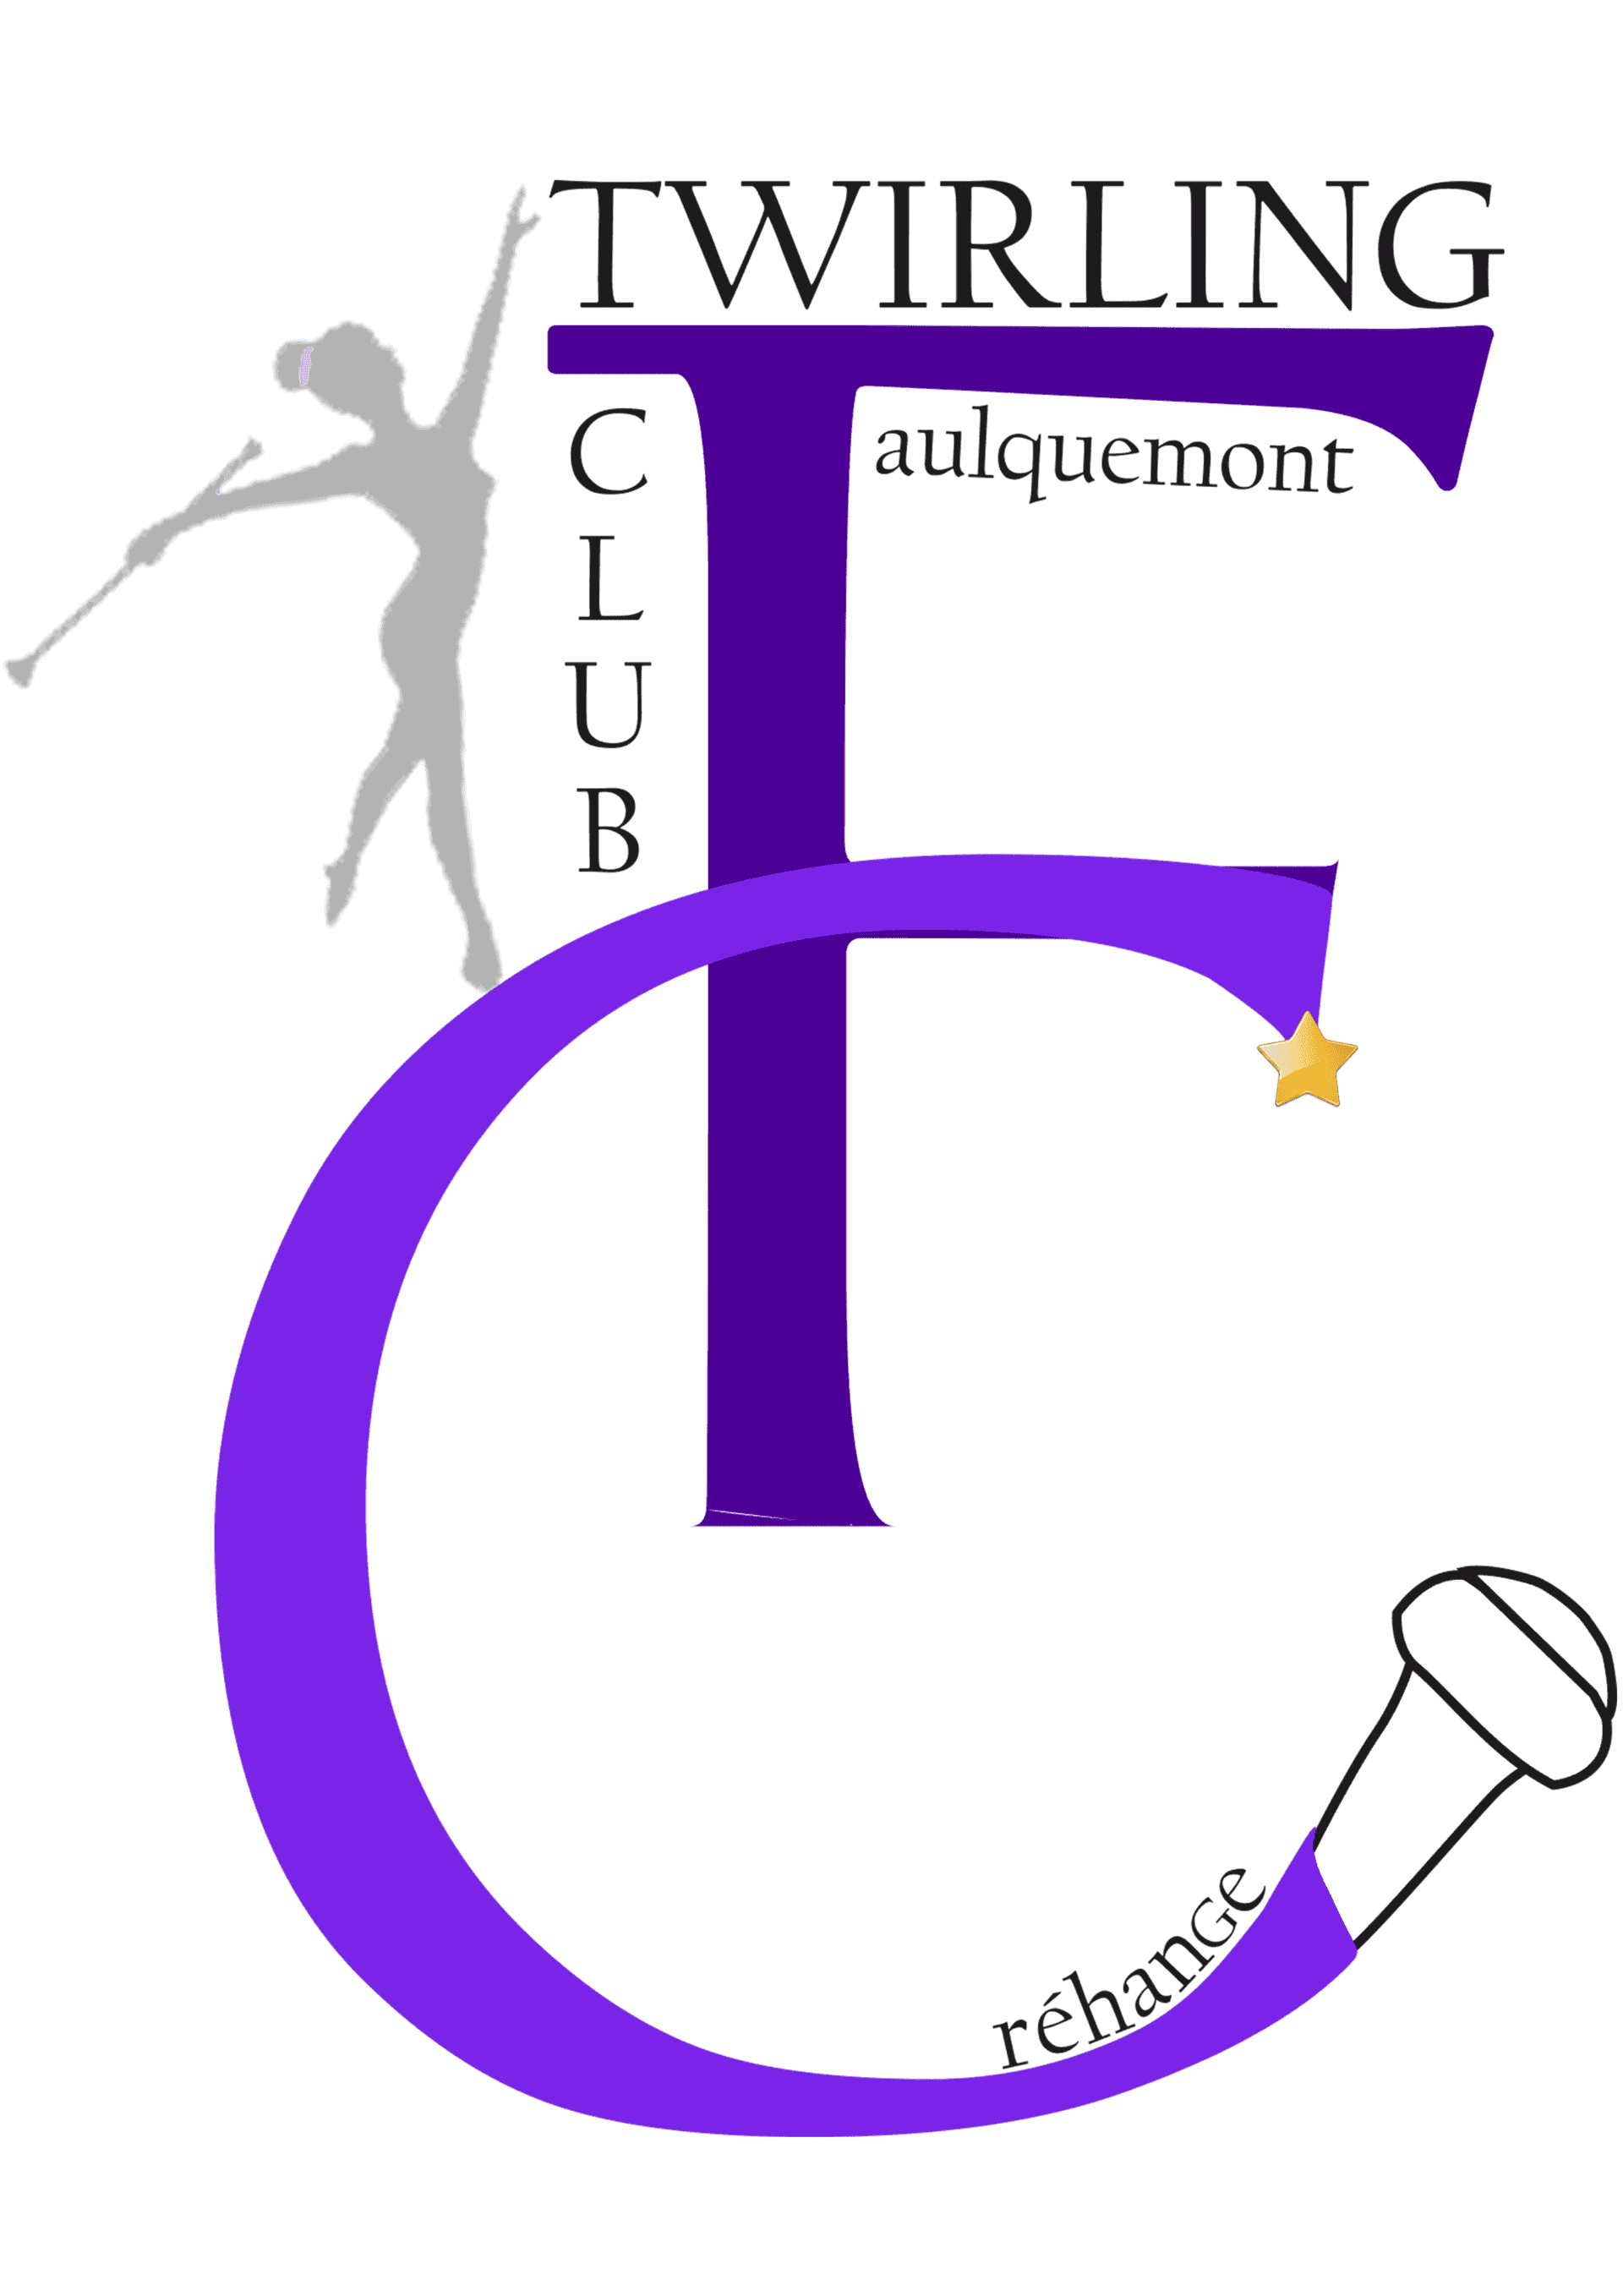 twirling club faulquemont.png